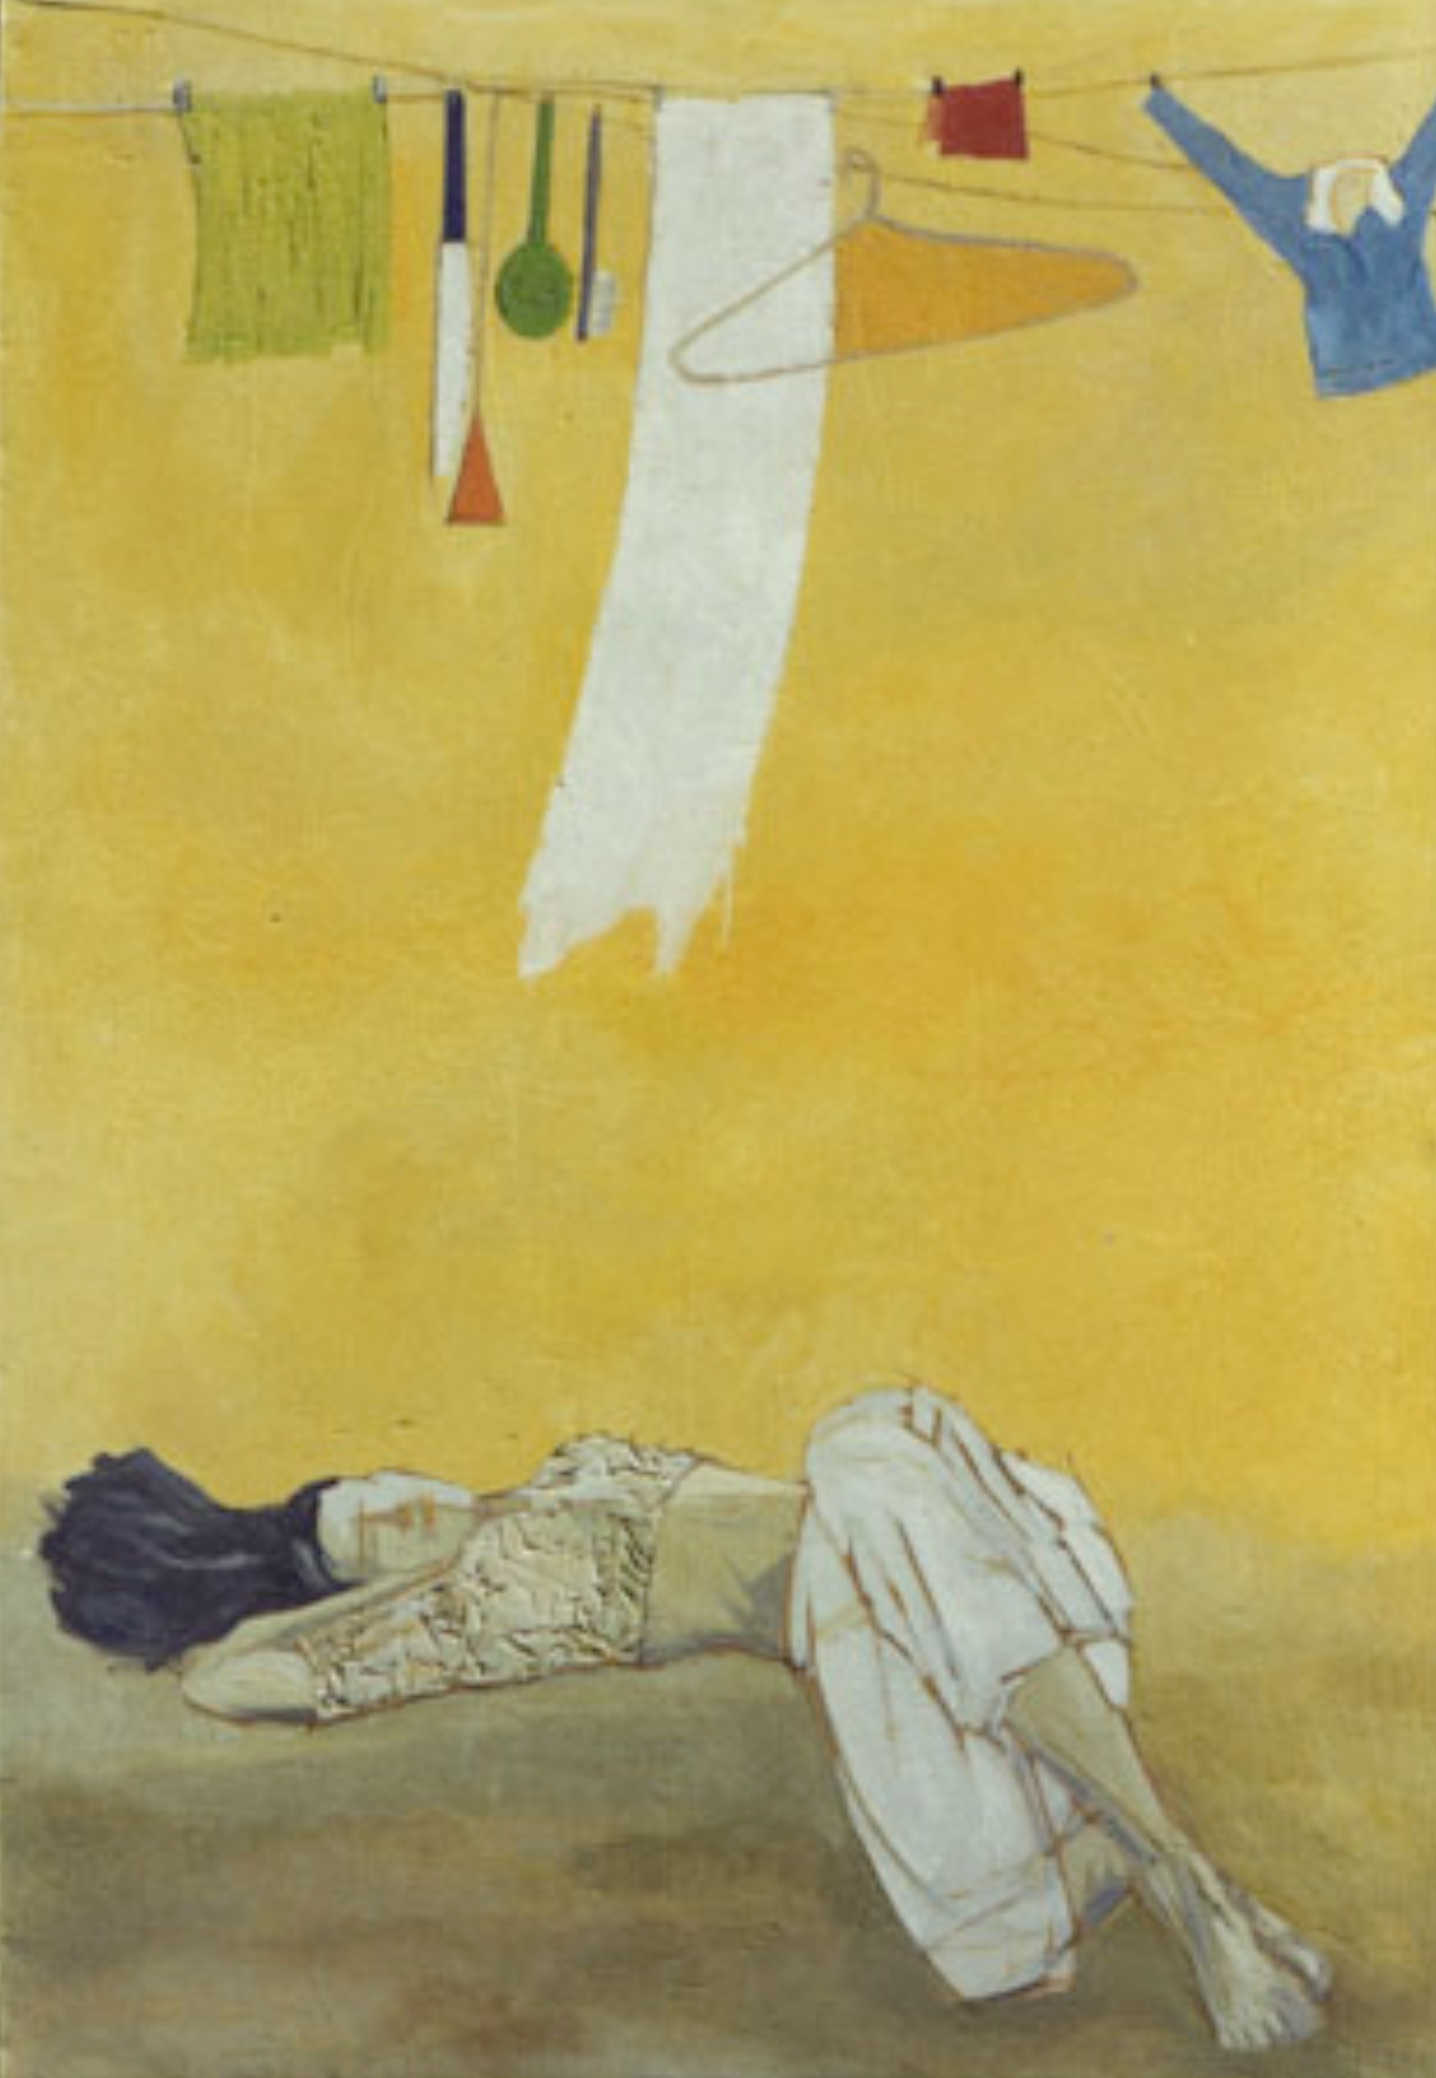 Fraction-12   This mix-media painting is dominated by a yellow color that is used to symbolize the withered time. In this painting, there is a weary girl in a reclining position. Above this figure are clothes, hangers, knives, brushes, spades, spoons, etc. suspended from horizontal ropes. A parallel could be drawn between the suspended utensils and the social status of the woman figure below. She is rather treated as an inanimate object in our society and the legacy of this outlook still carries.